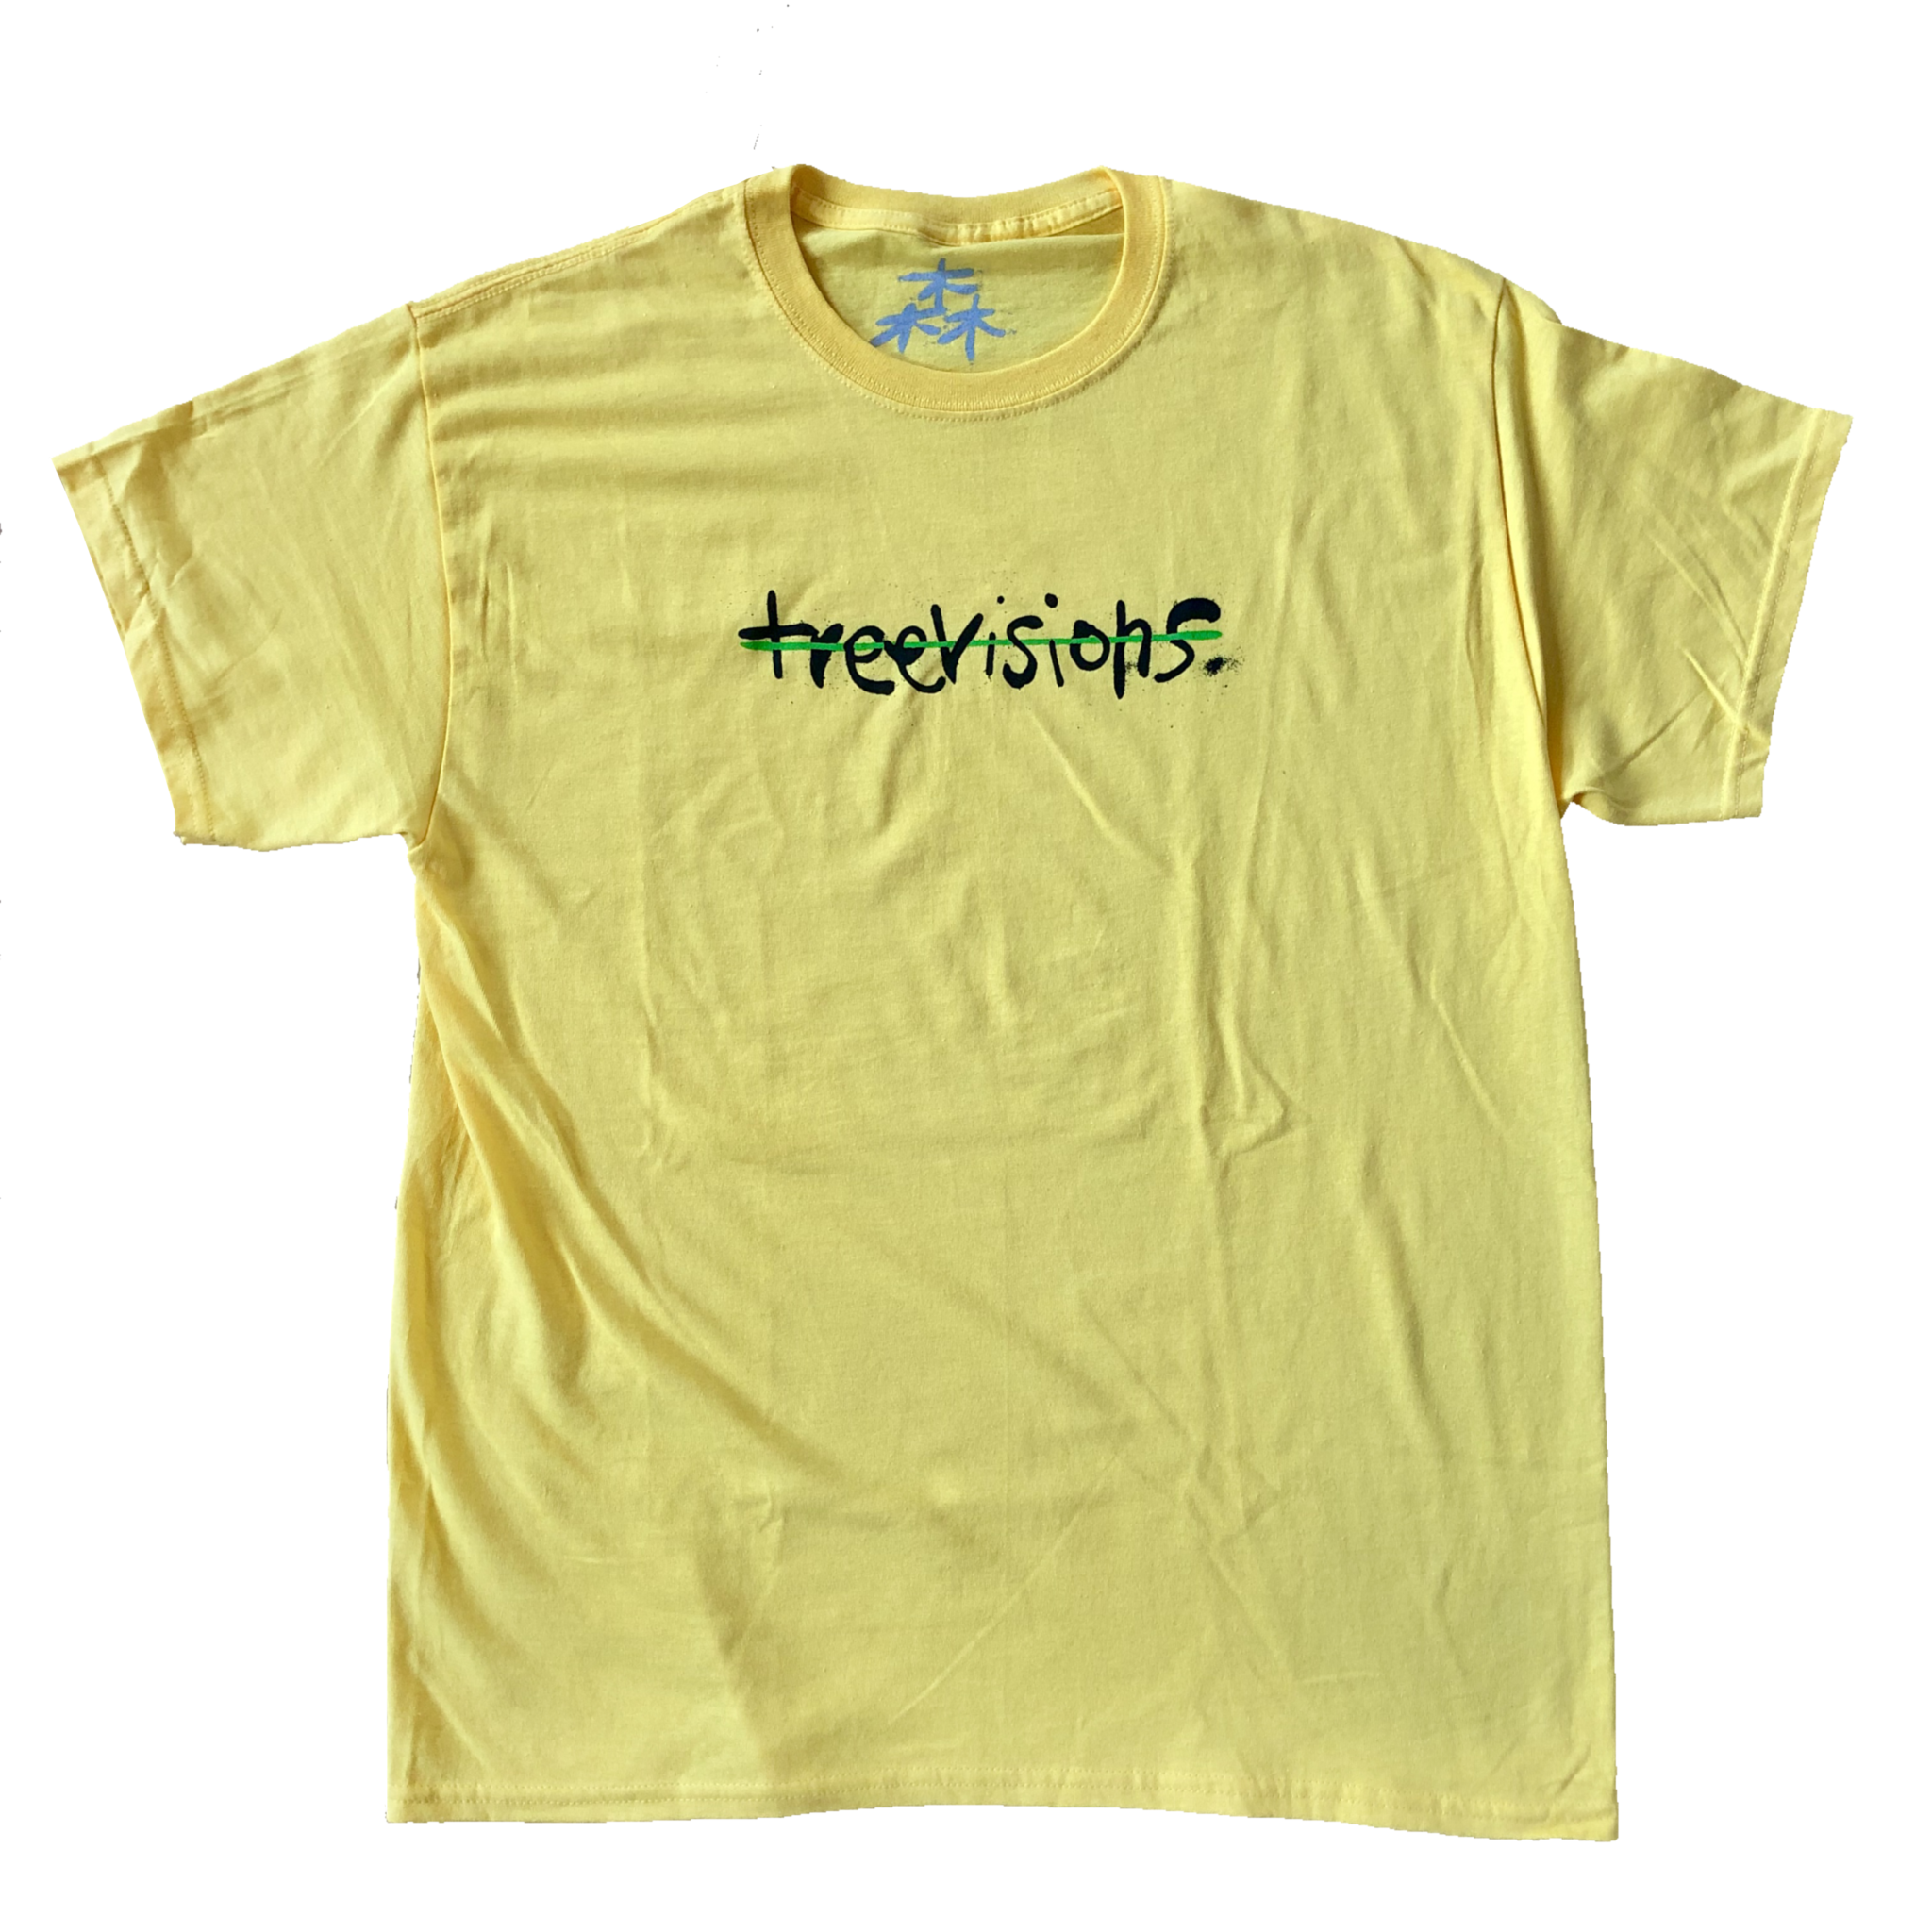 Treevisions Treevisions Line Yellow Tee